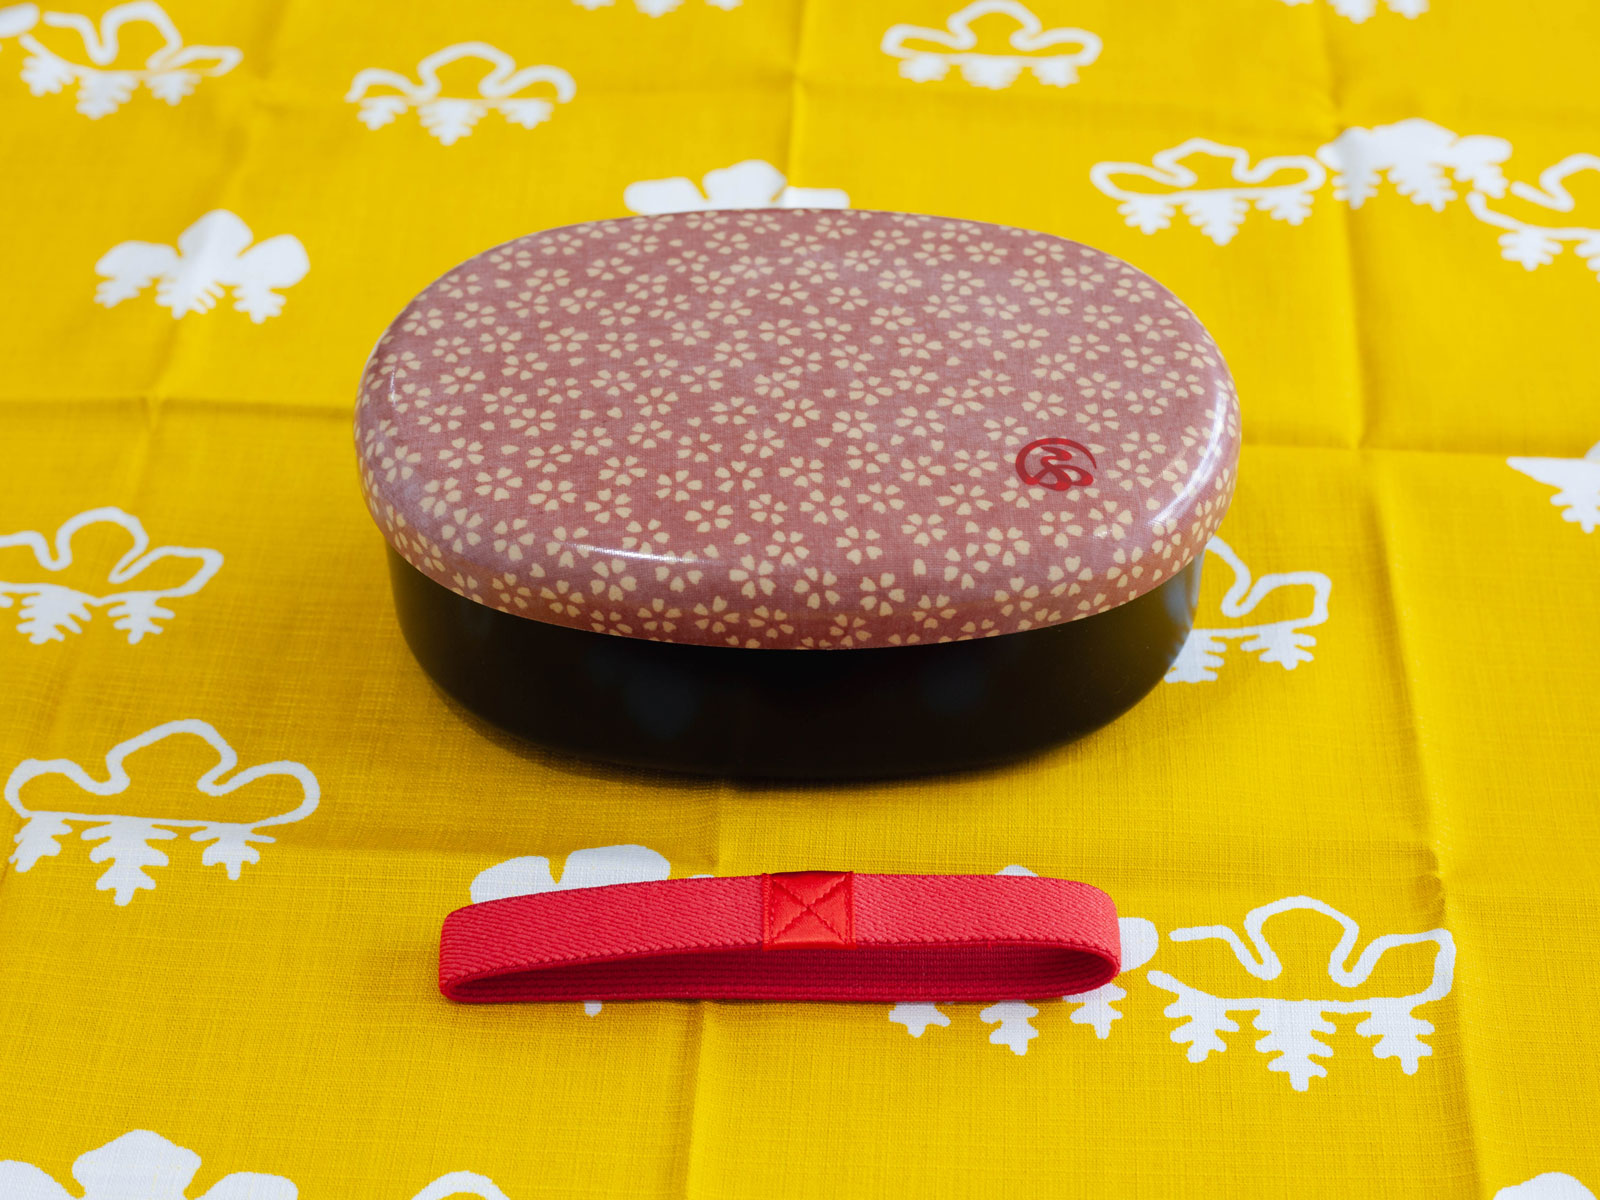 Wafu Cloth Round Bento Box | Sakura Blossom by Hakoya - Bento&co Japanese Bento Lunch Boxes and Kitchenware Specialists